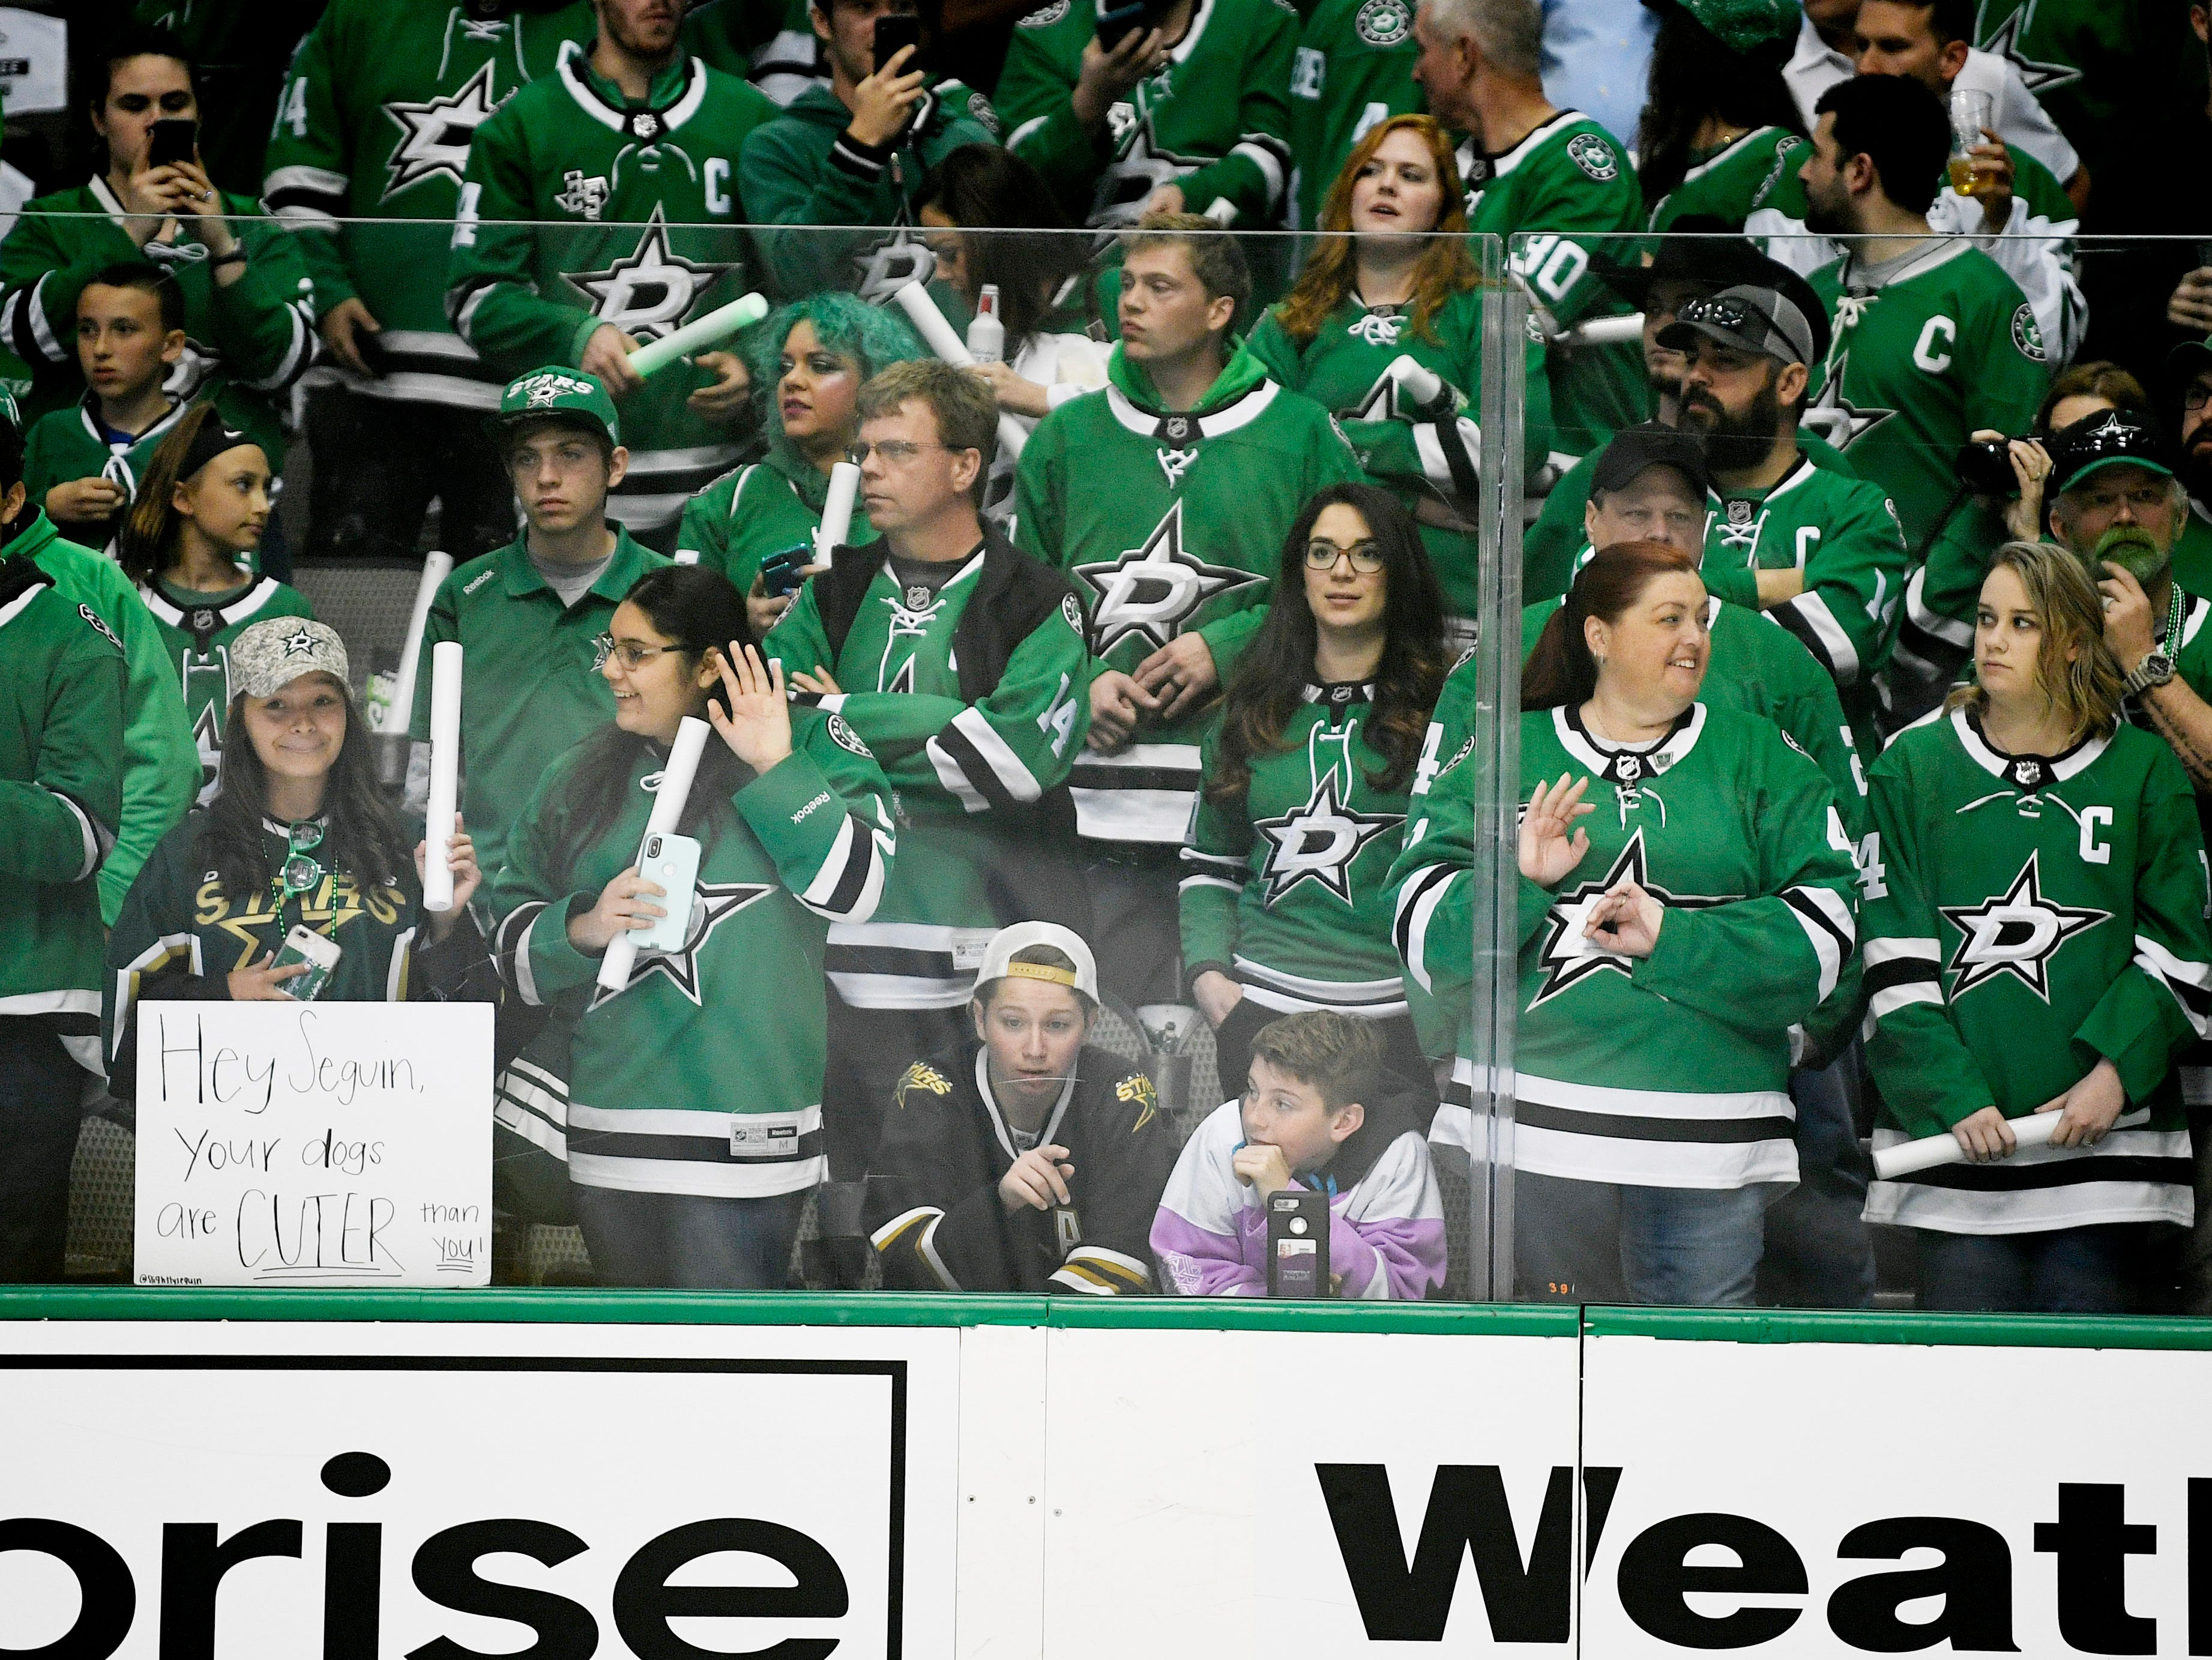 Stars fans watch warmups before the divisional semifinal game against the Predators at the American Airlines Center in Dallas, Texas., Monday, April 15, 2019.